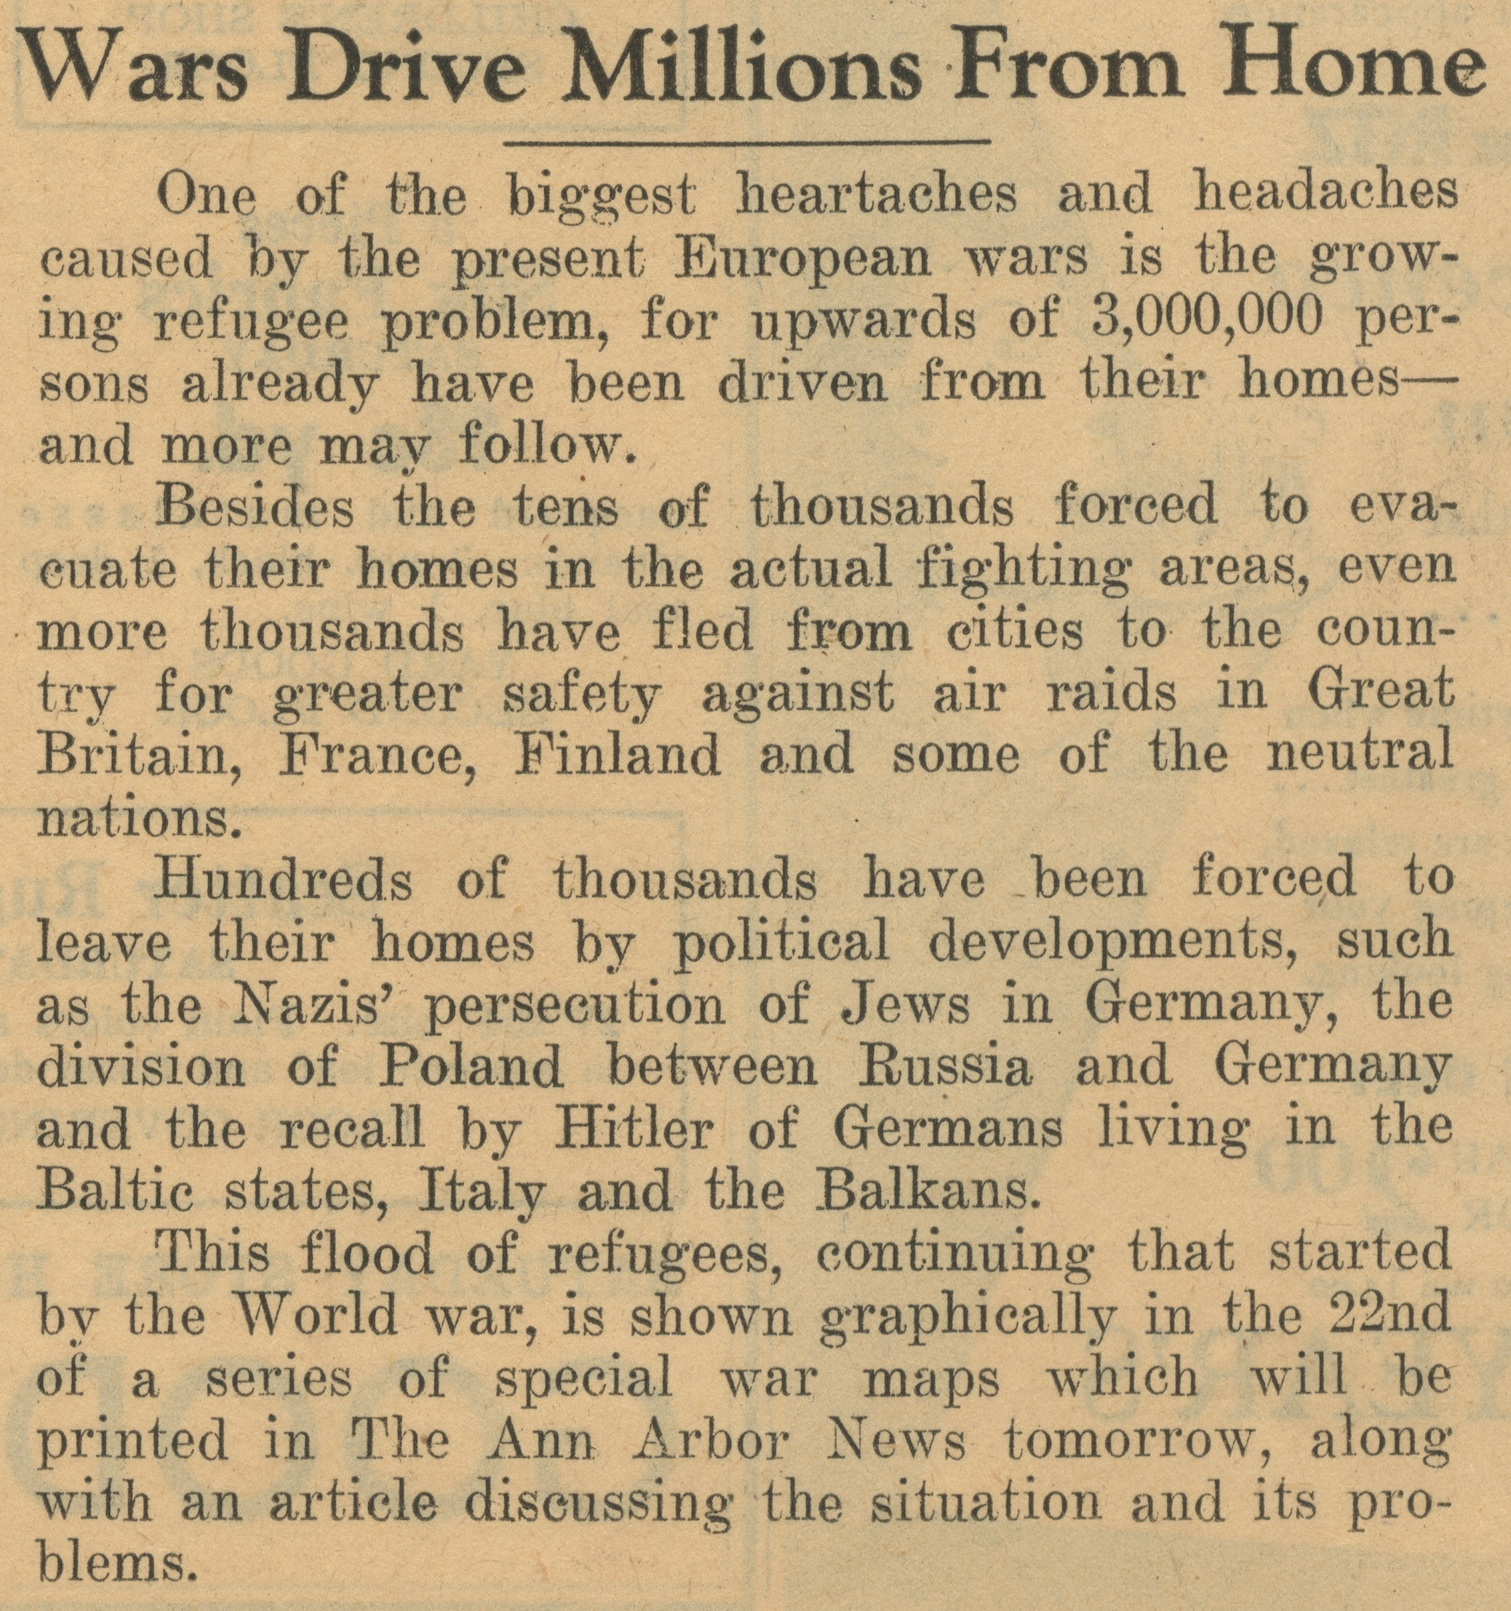 Wars Drive Millions From Home image